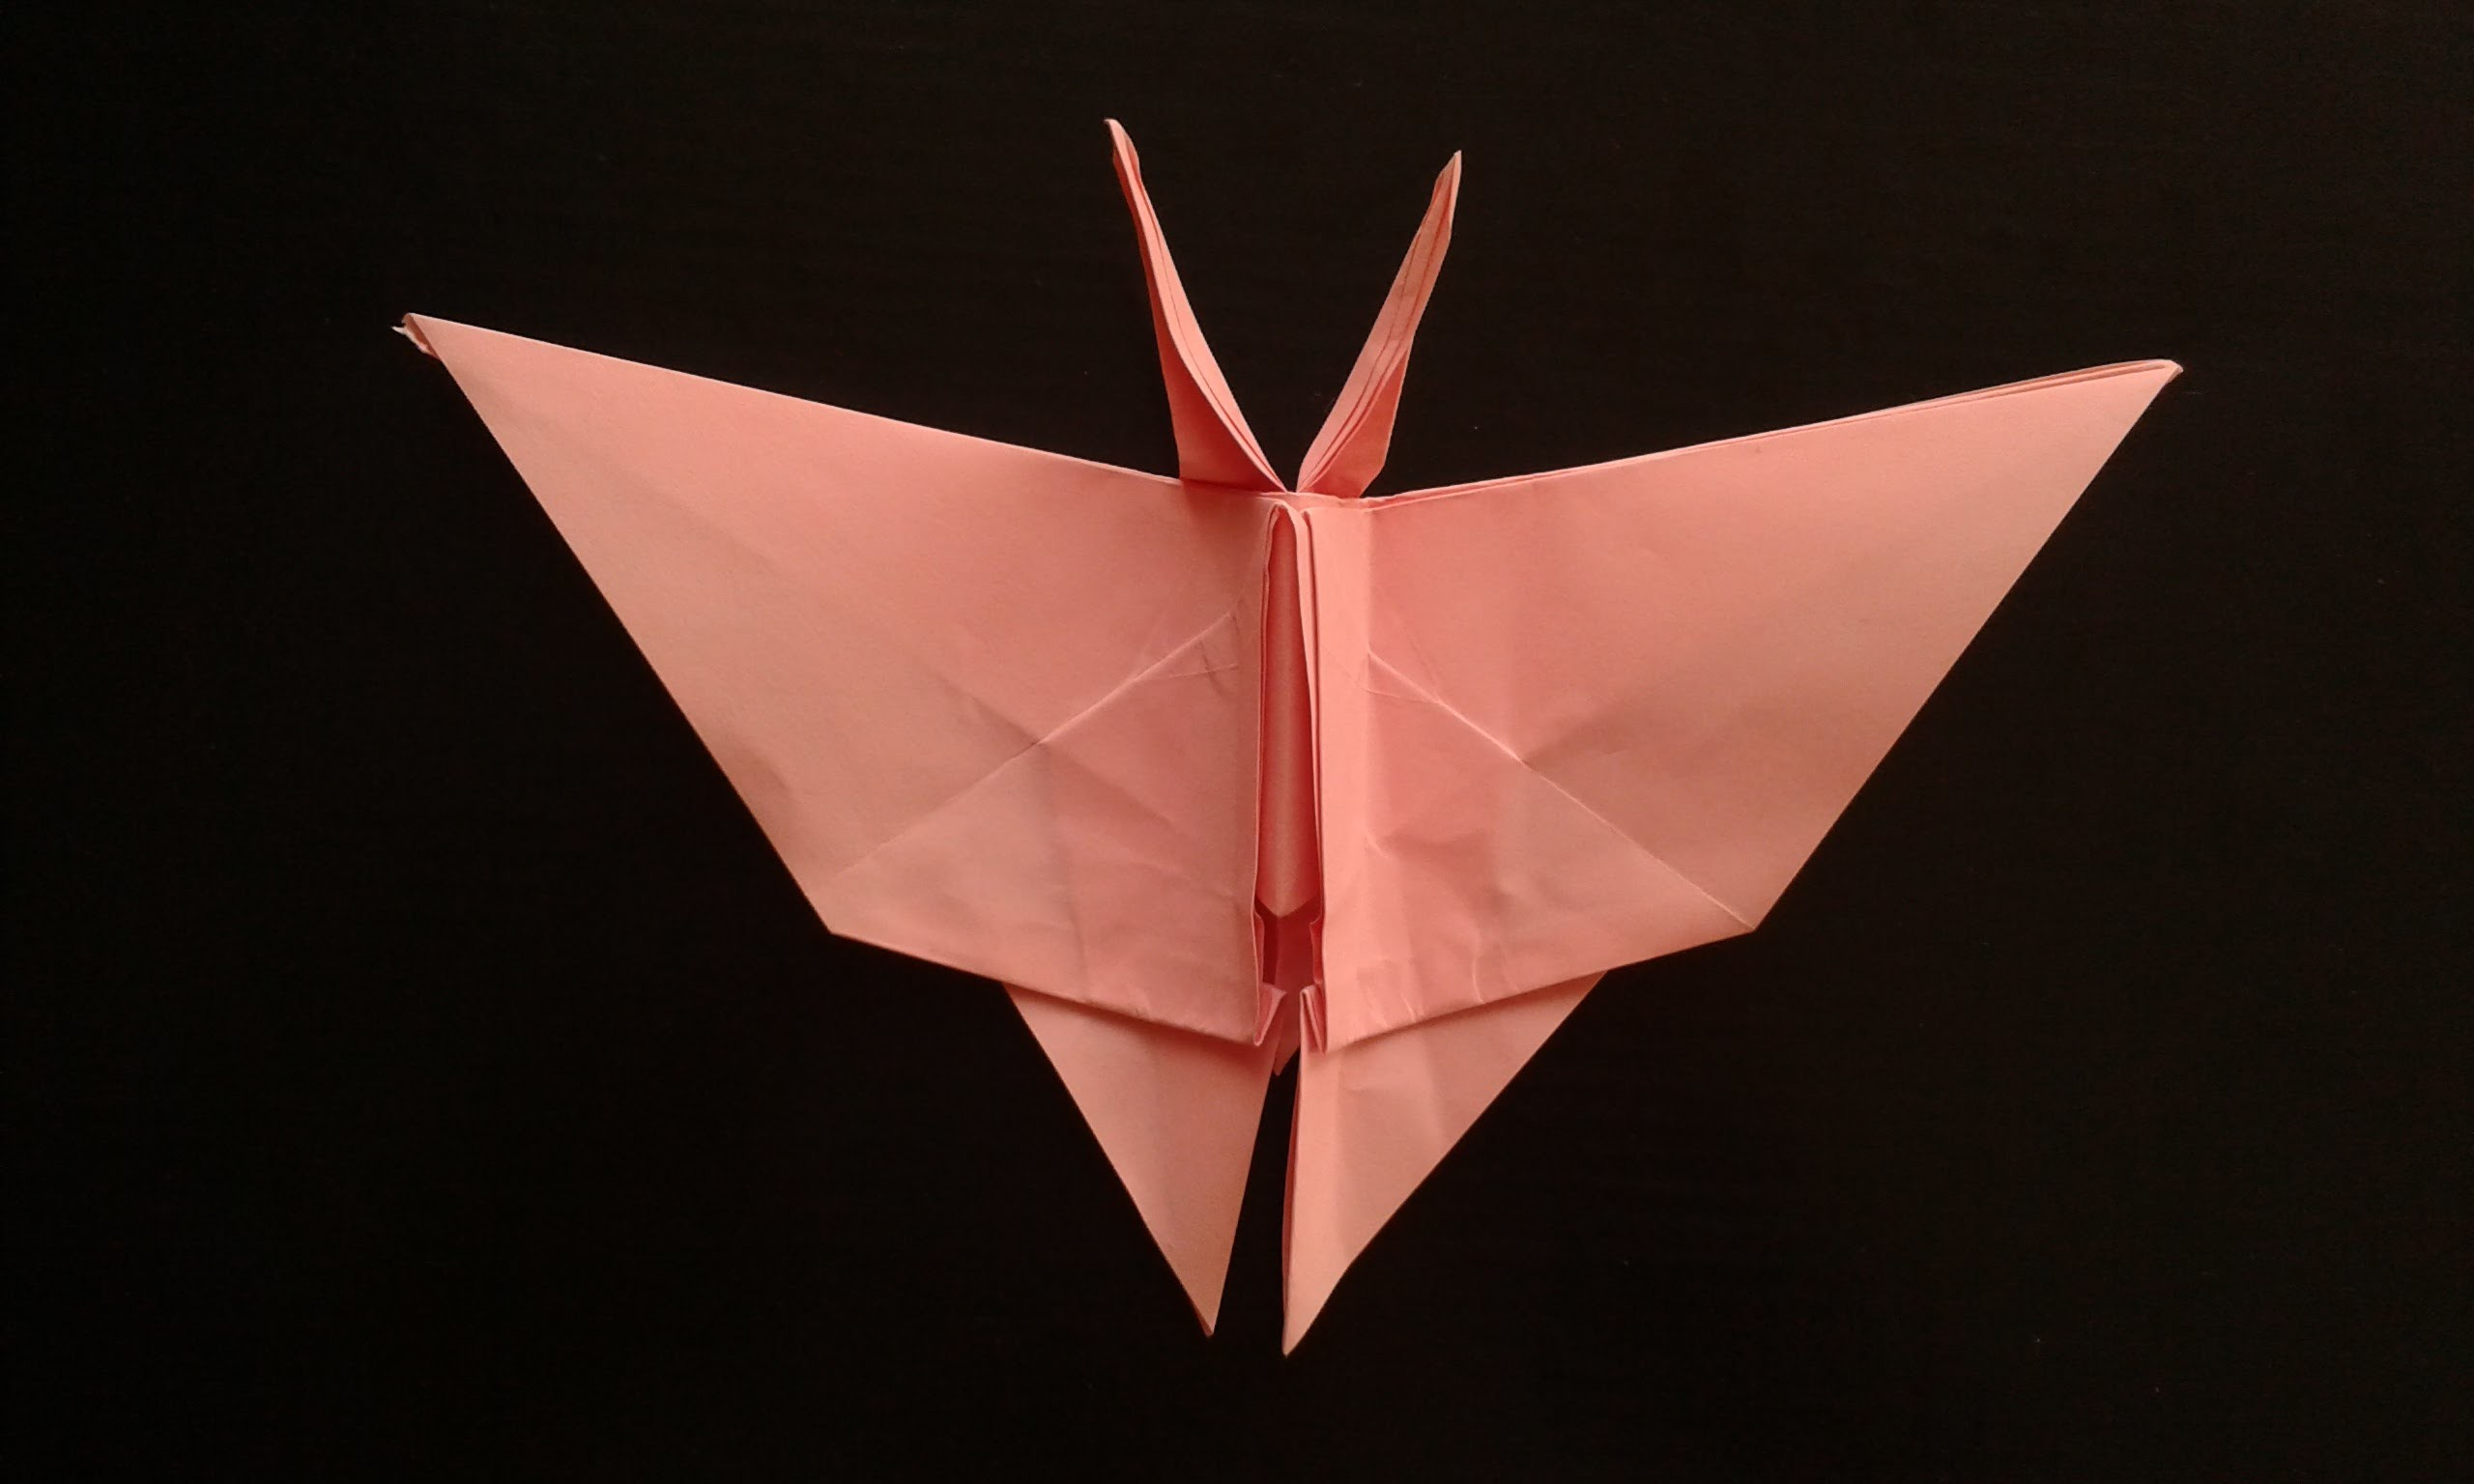 How to make an origami Butterfly оригами бабочка